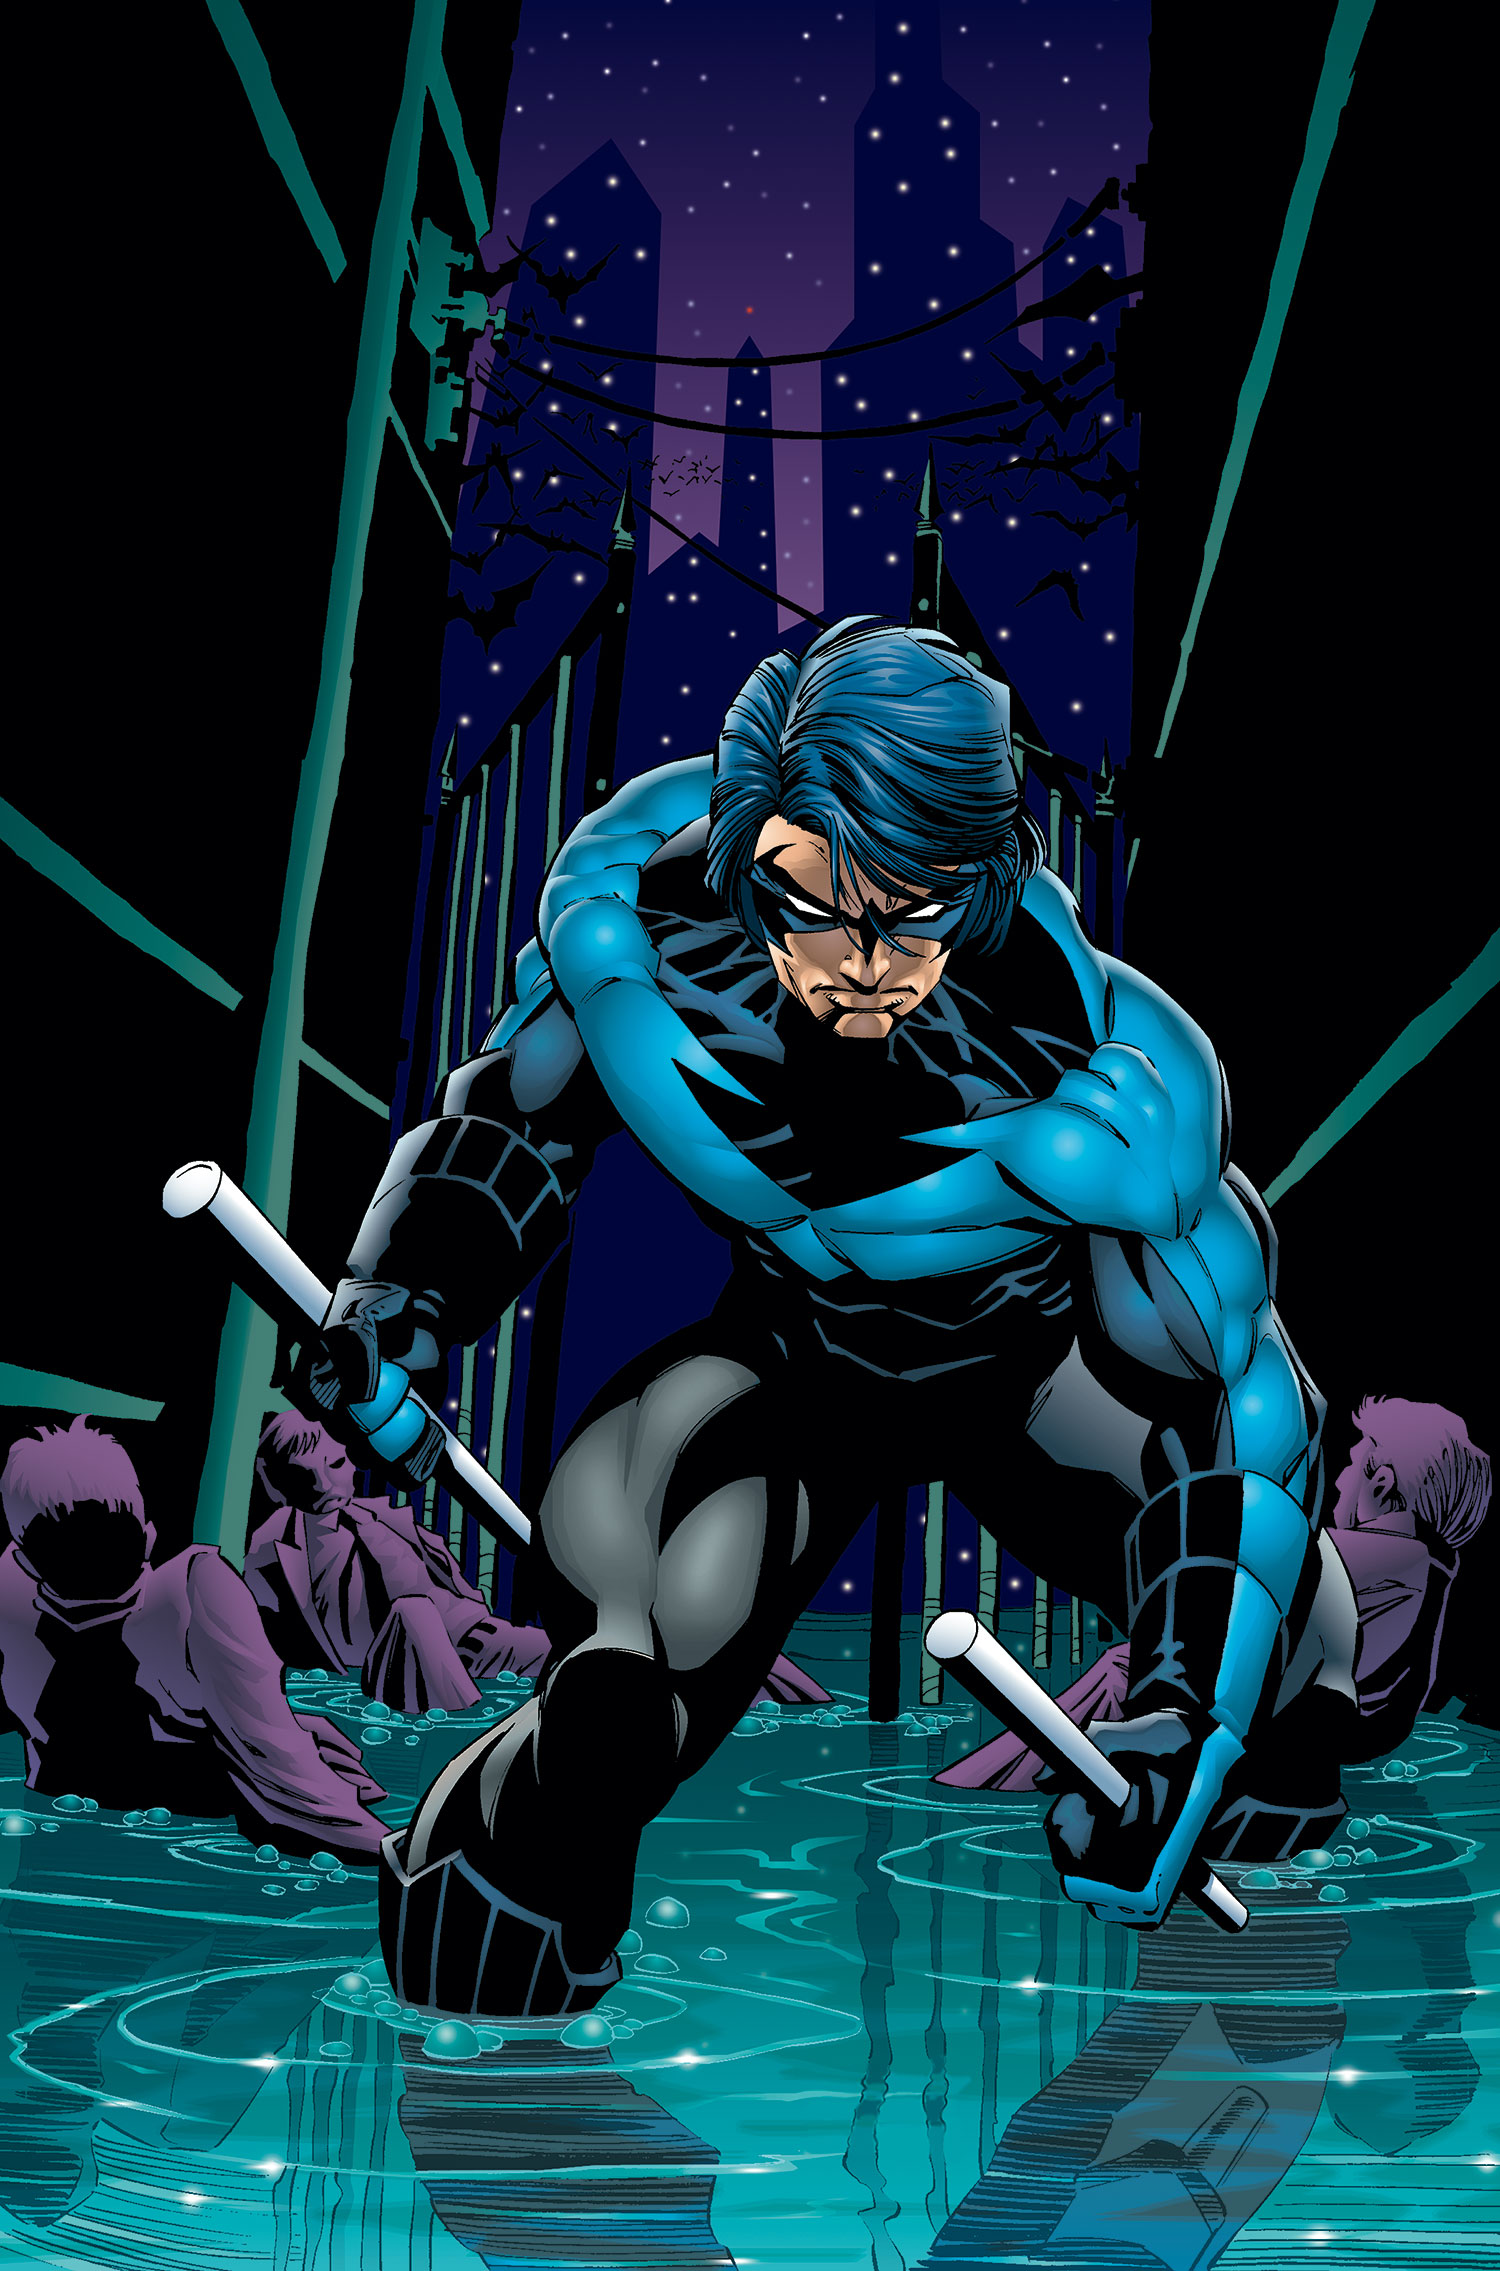 [TEMPORADA 1] CLASH OF SUPERHEROES - Parte 1 - - Página 38 Nightwing_0002